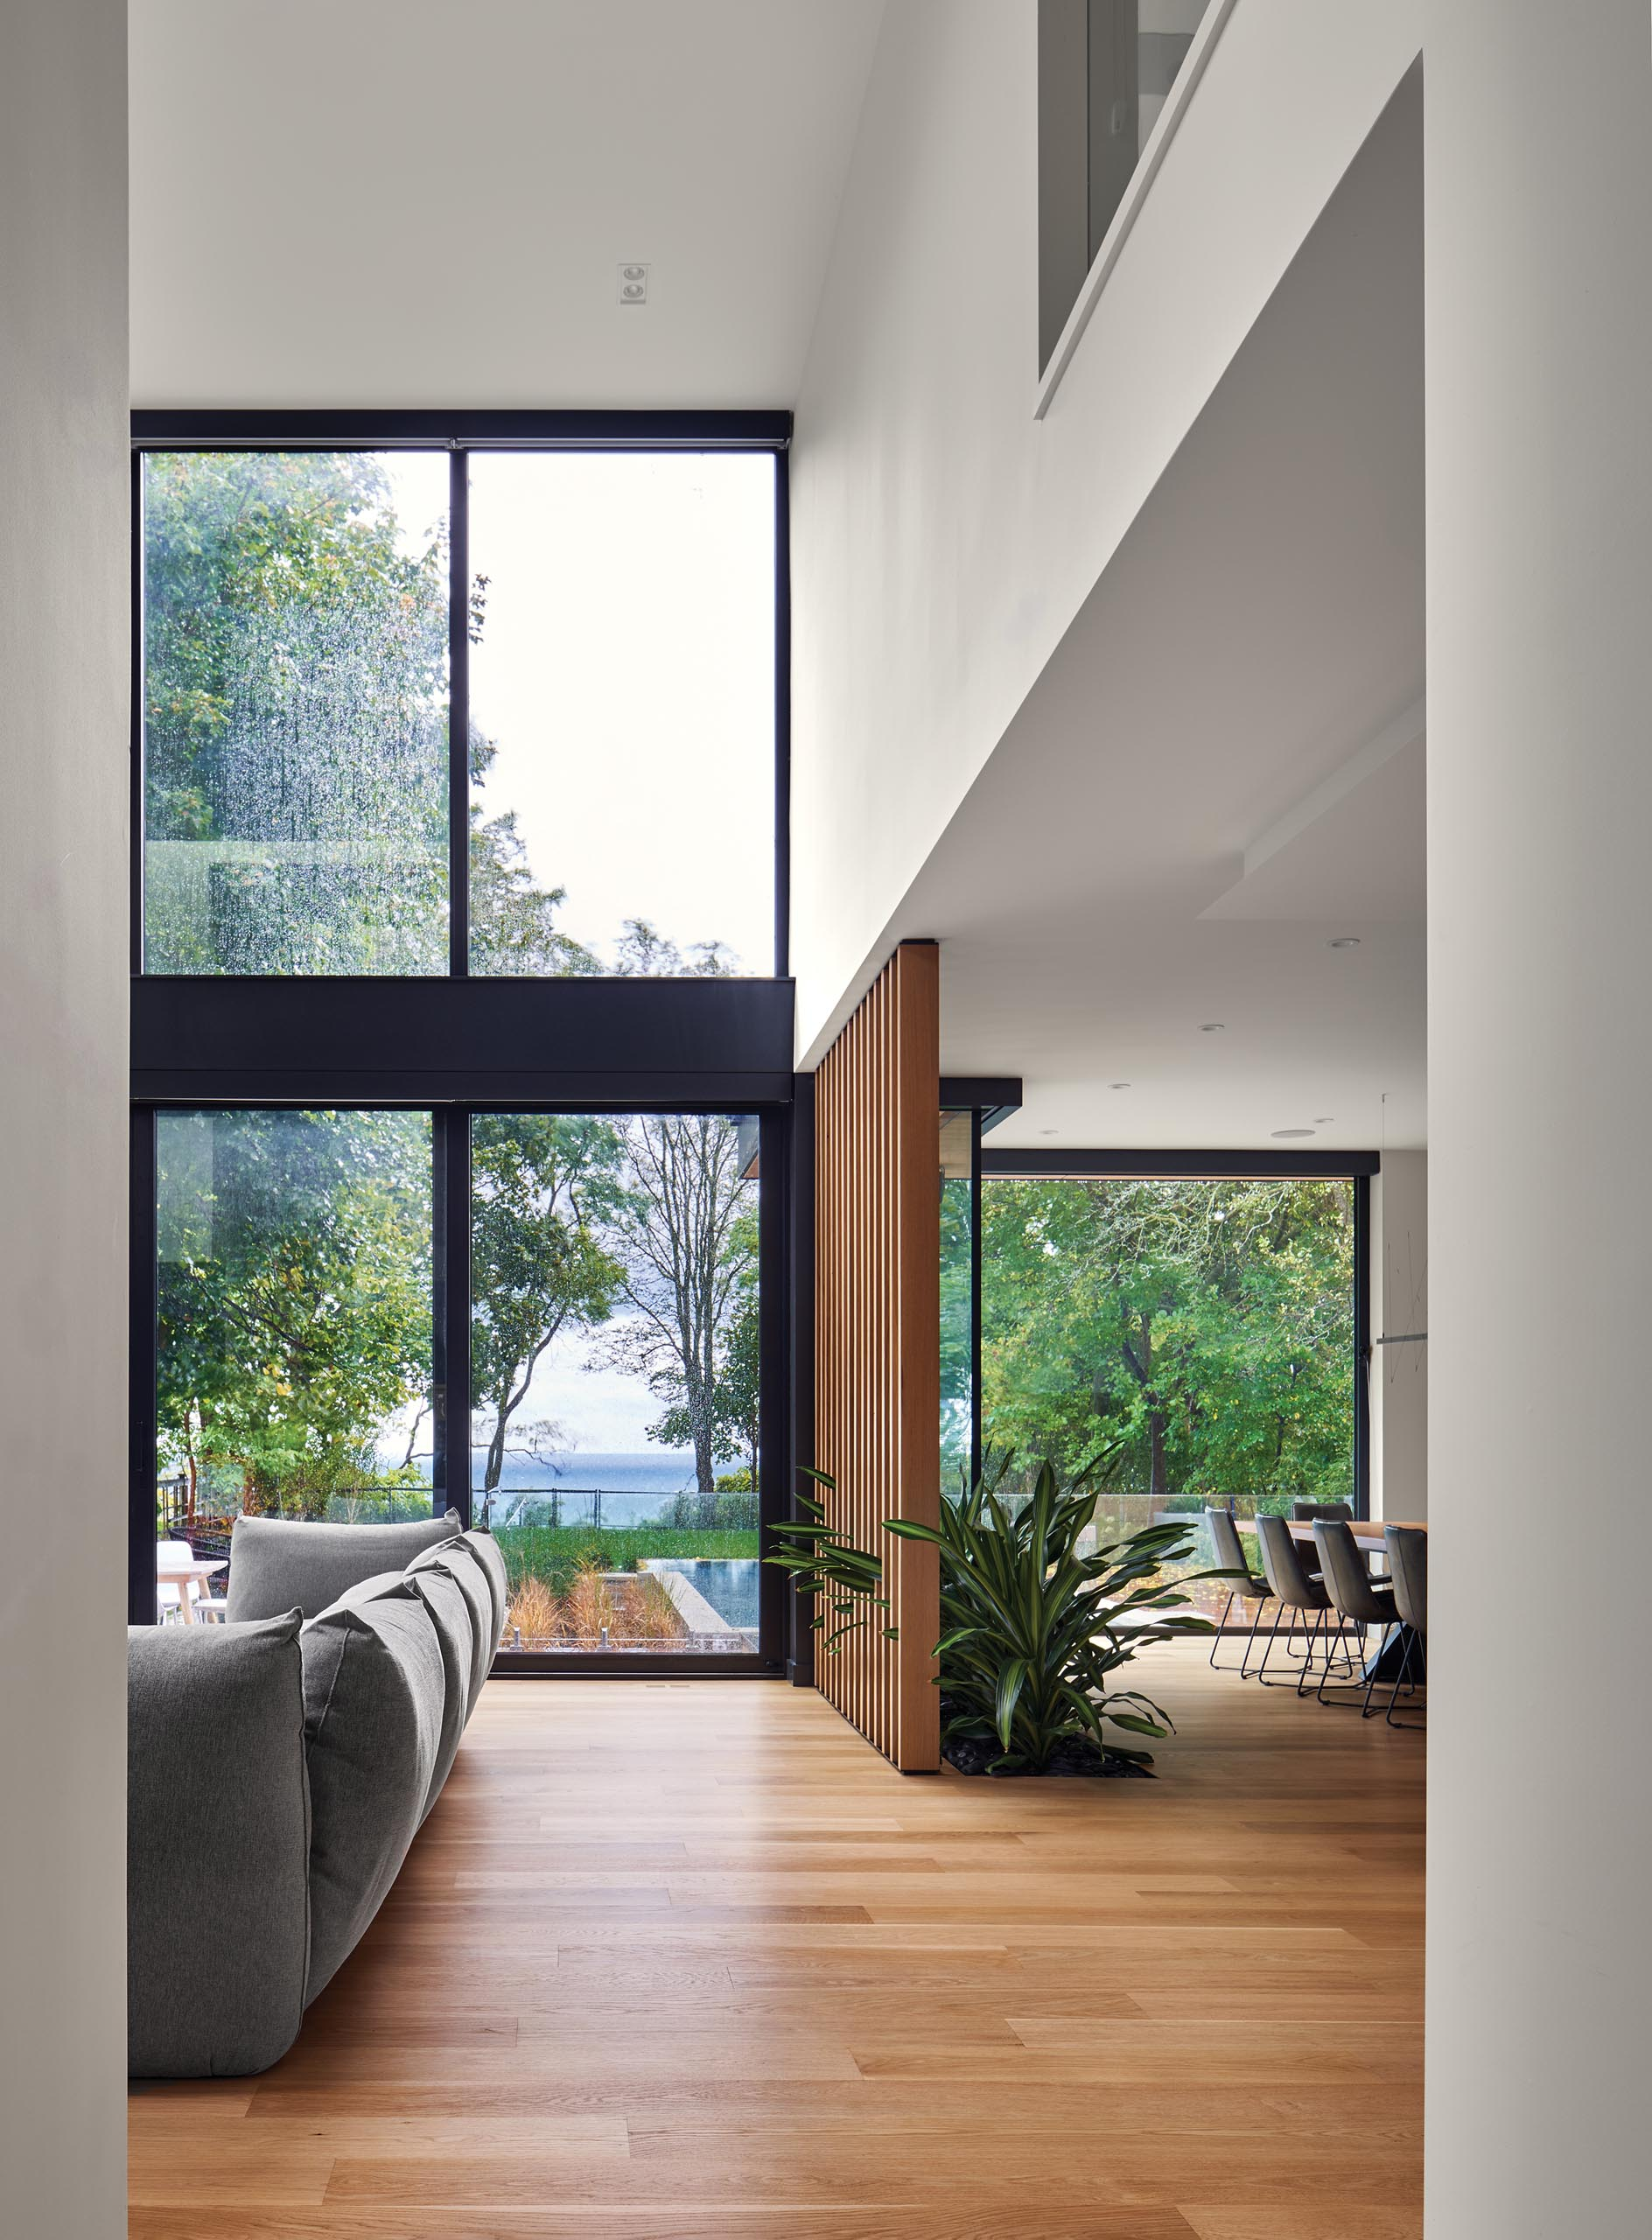 A modern house with double-height windows and ceiling, a wood slat partition, and a built-in planter.